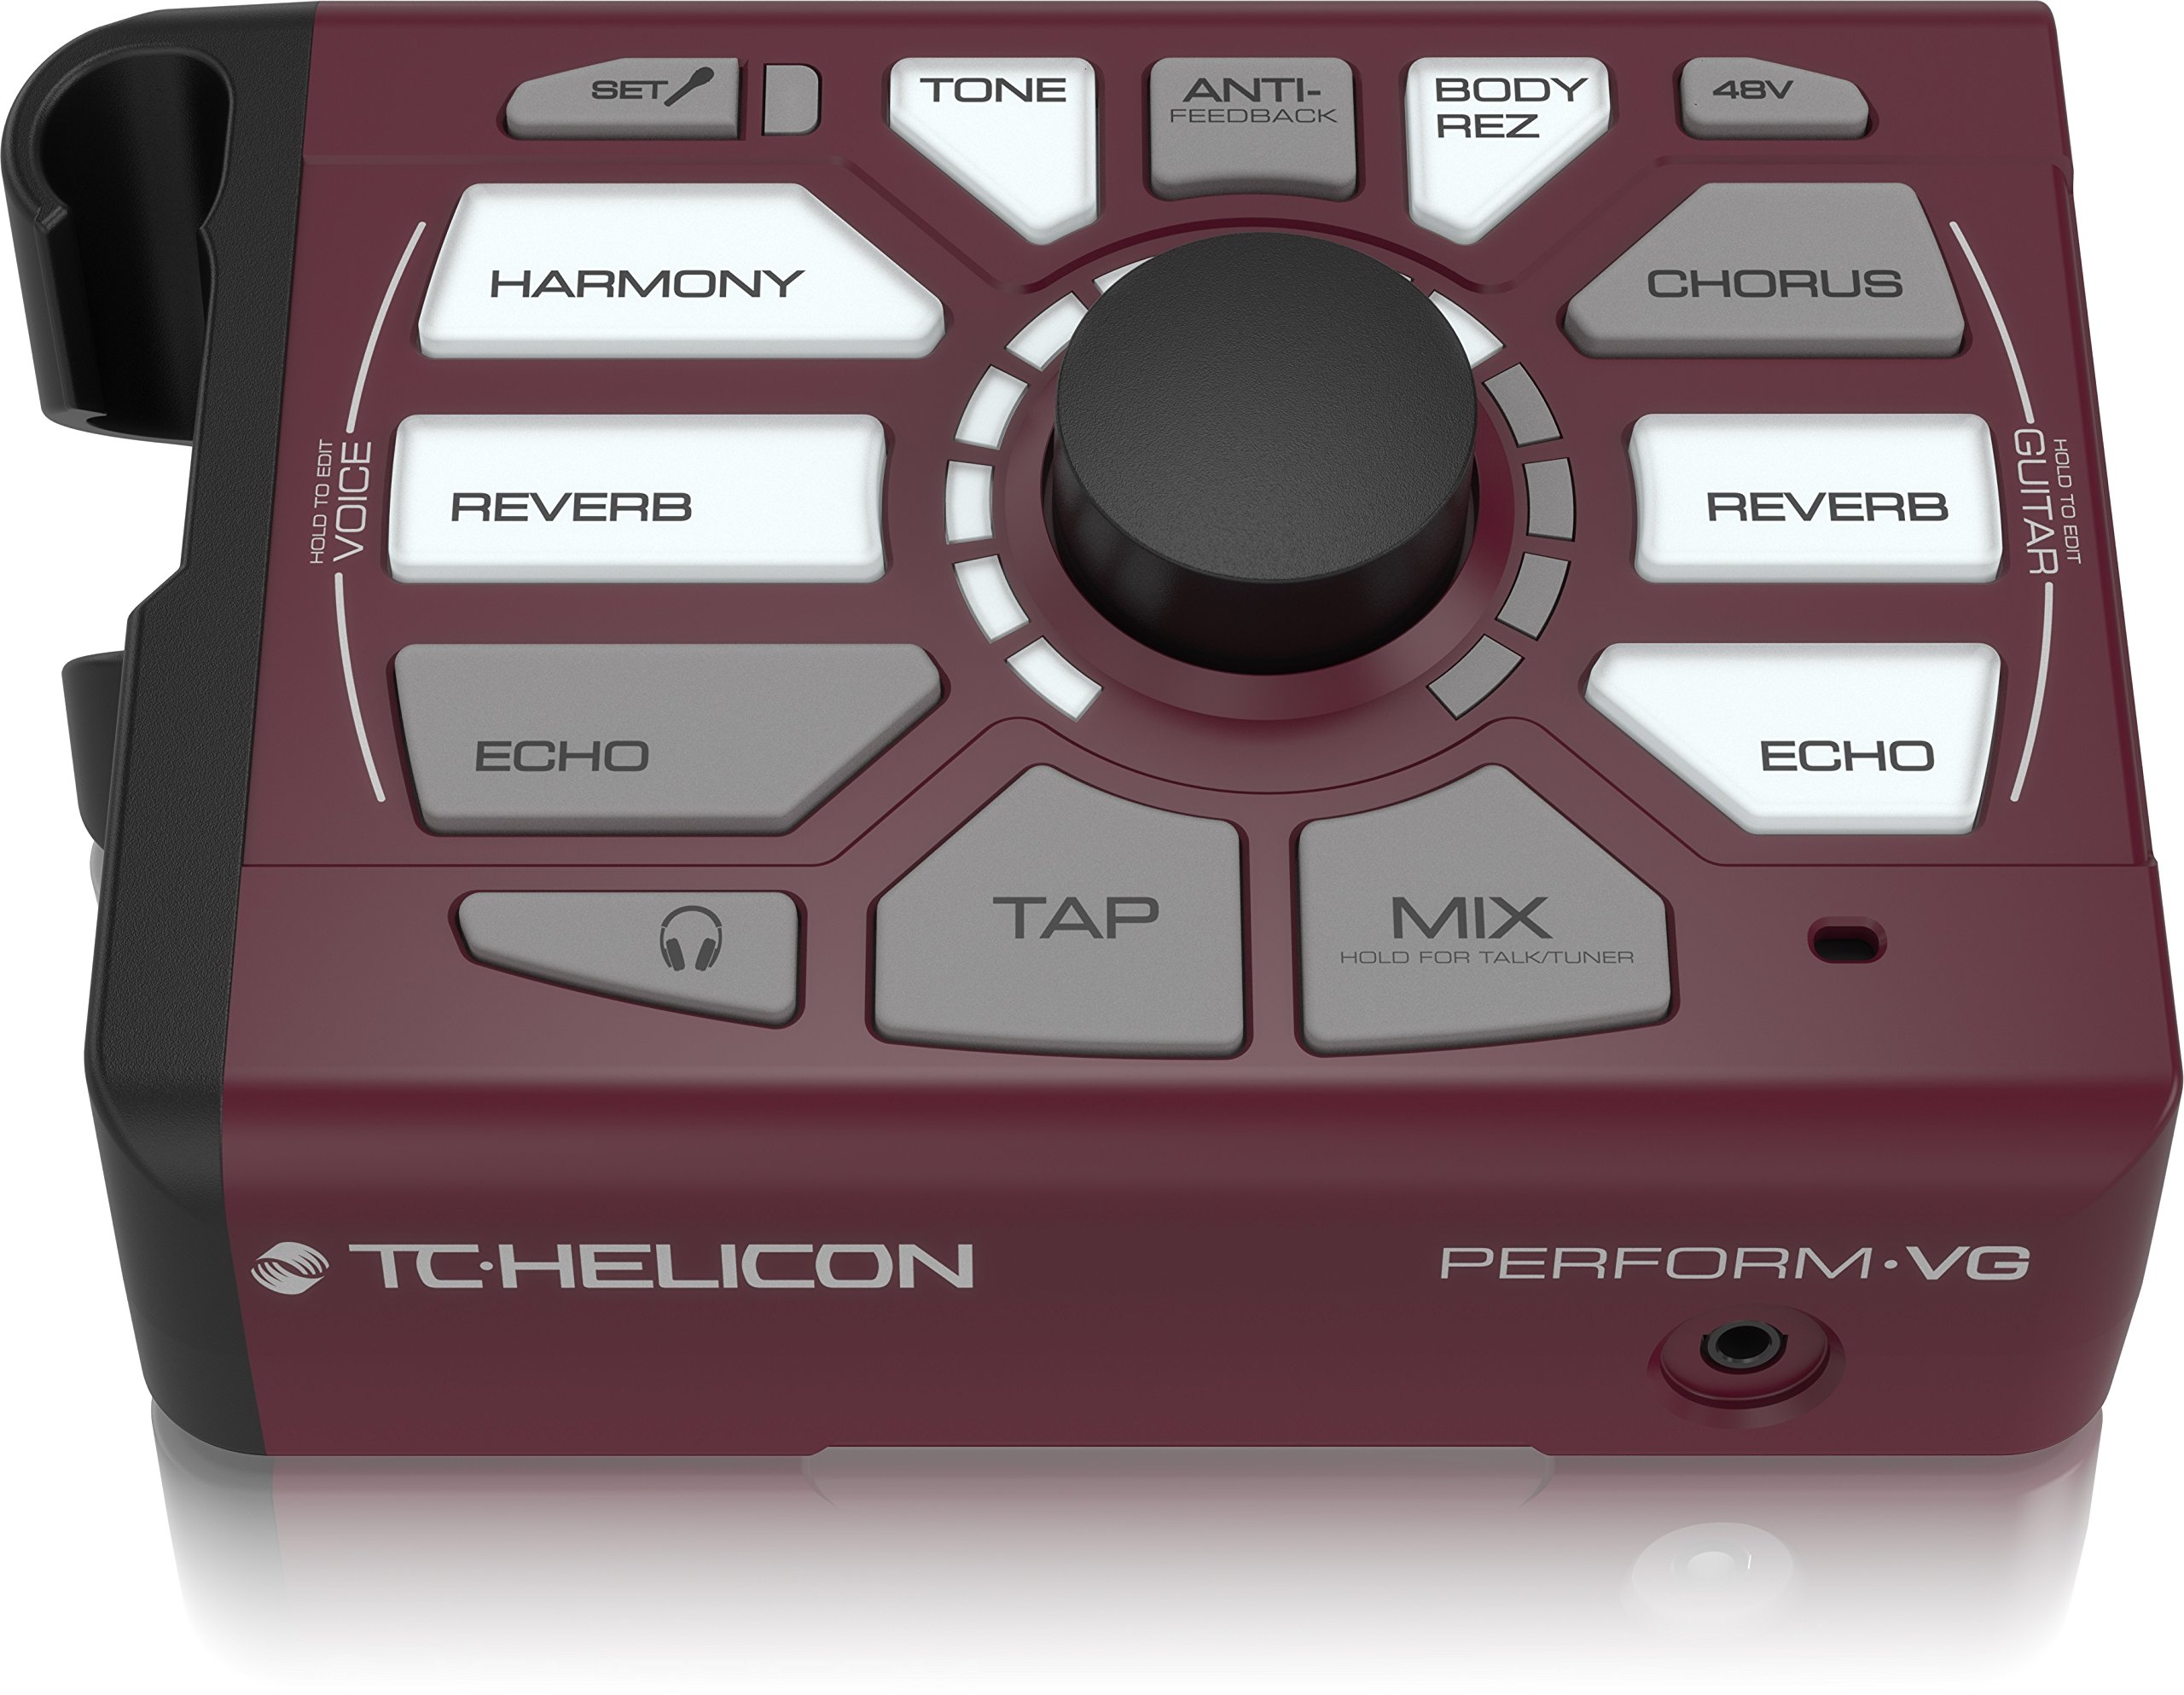 TC-Helicon 996369005 Perform VG Vocal Effect Processor, Burgundy